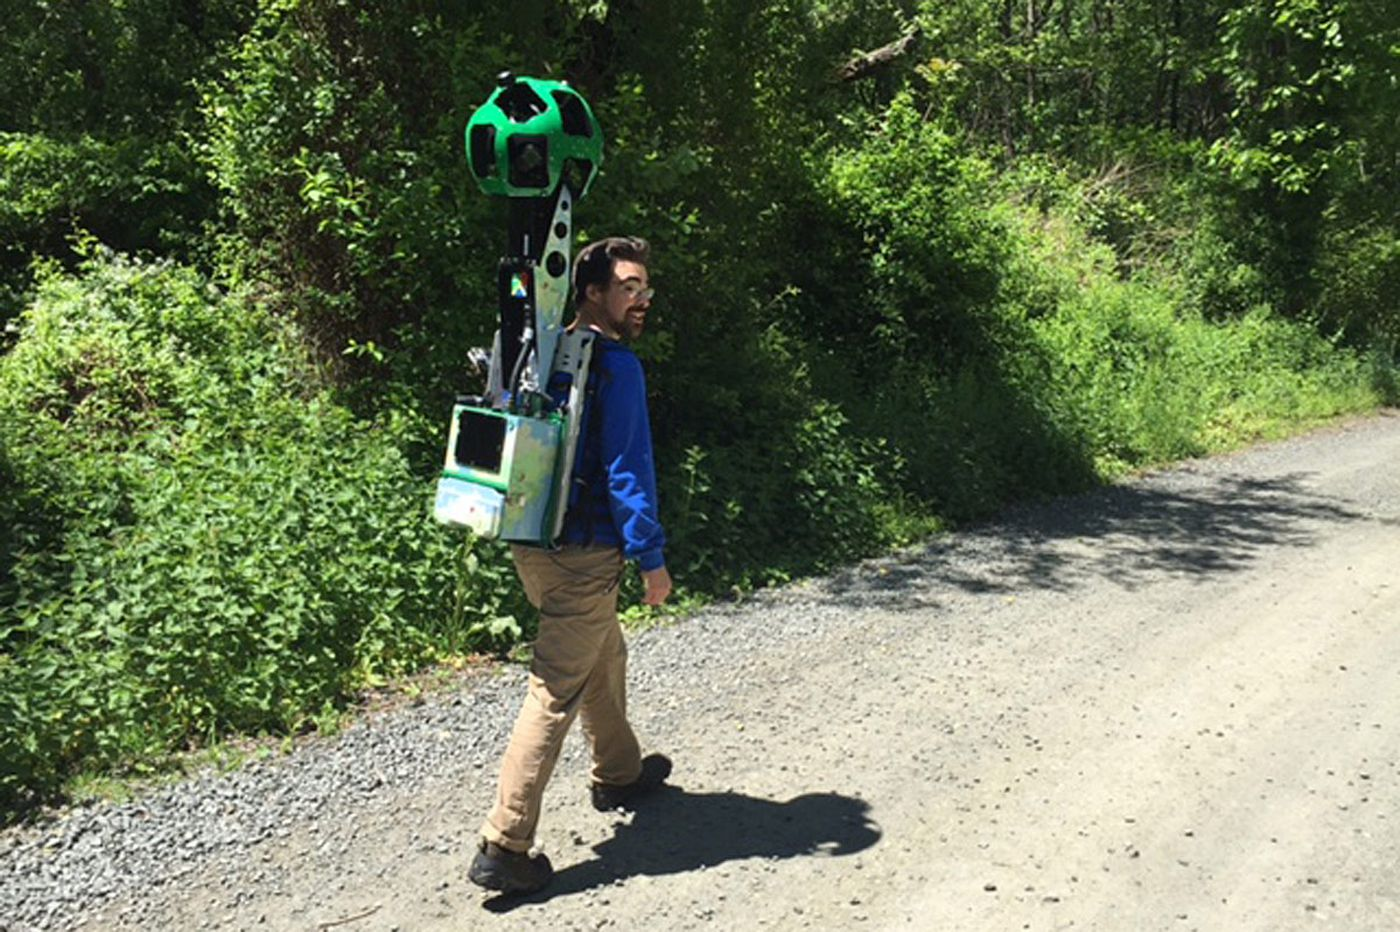 Two hikers capturing Philly parks for Google